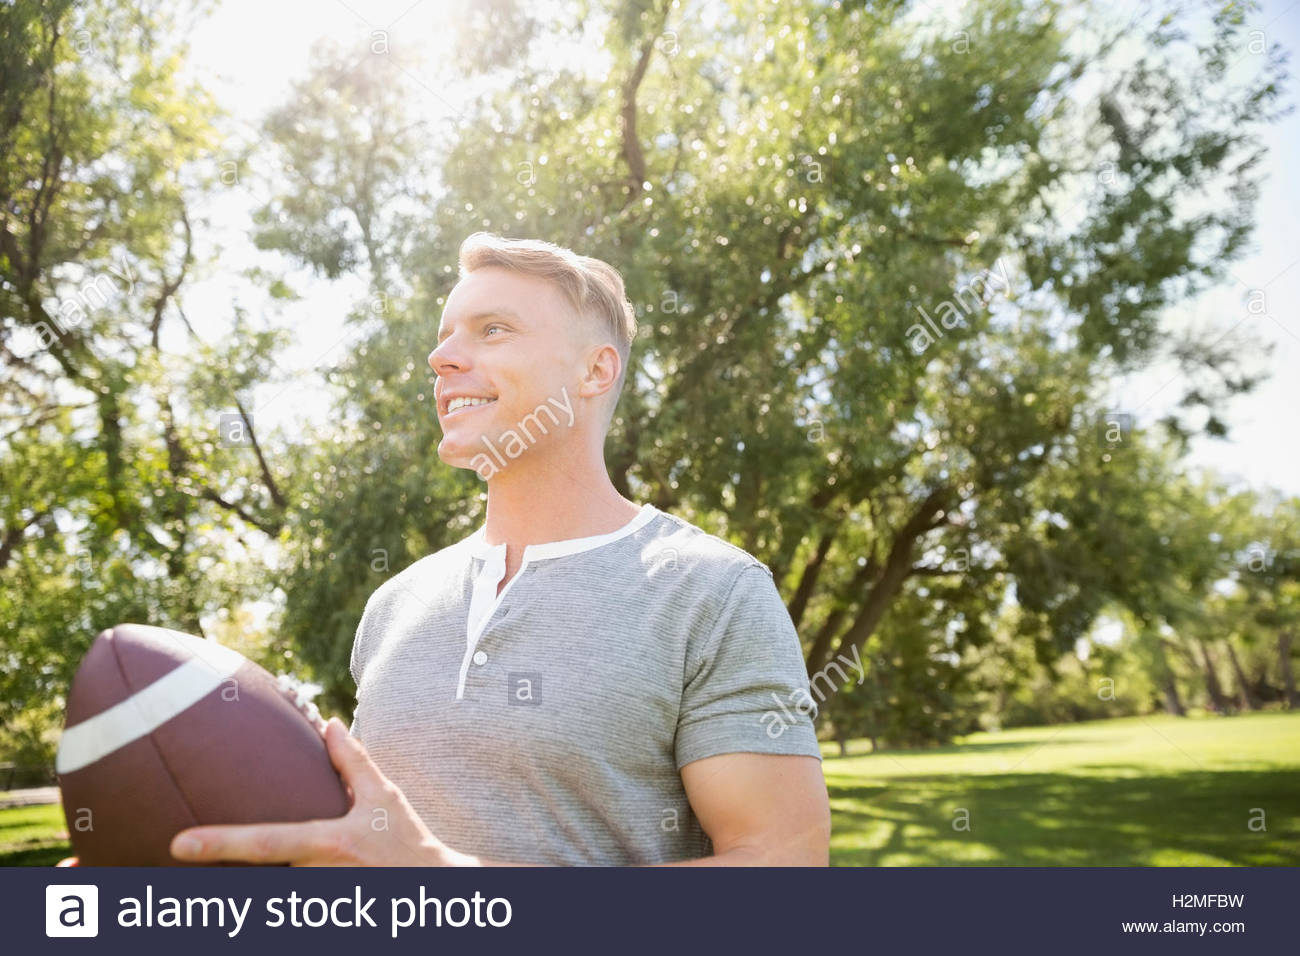 Smiling man playing football in sunny summer park Stock Photo